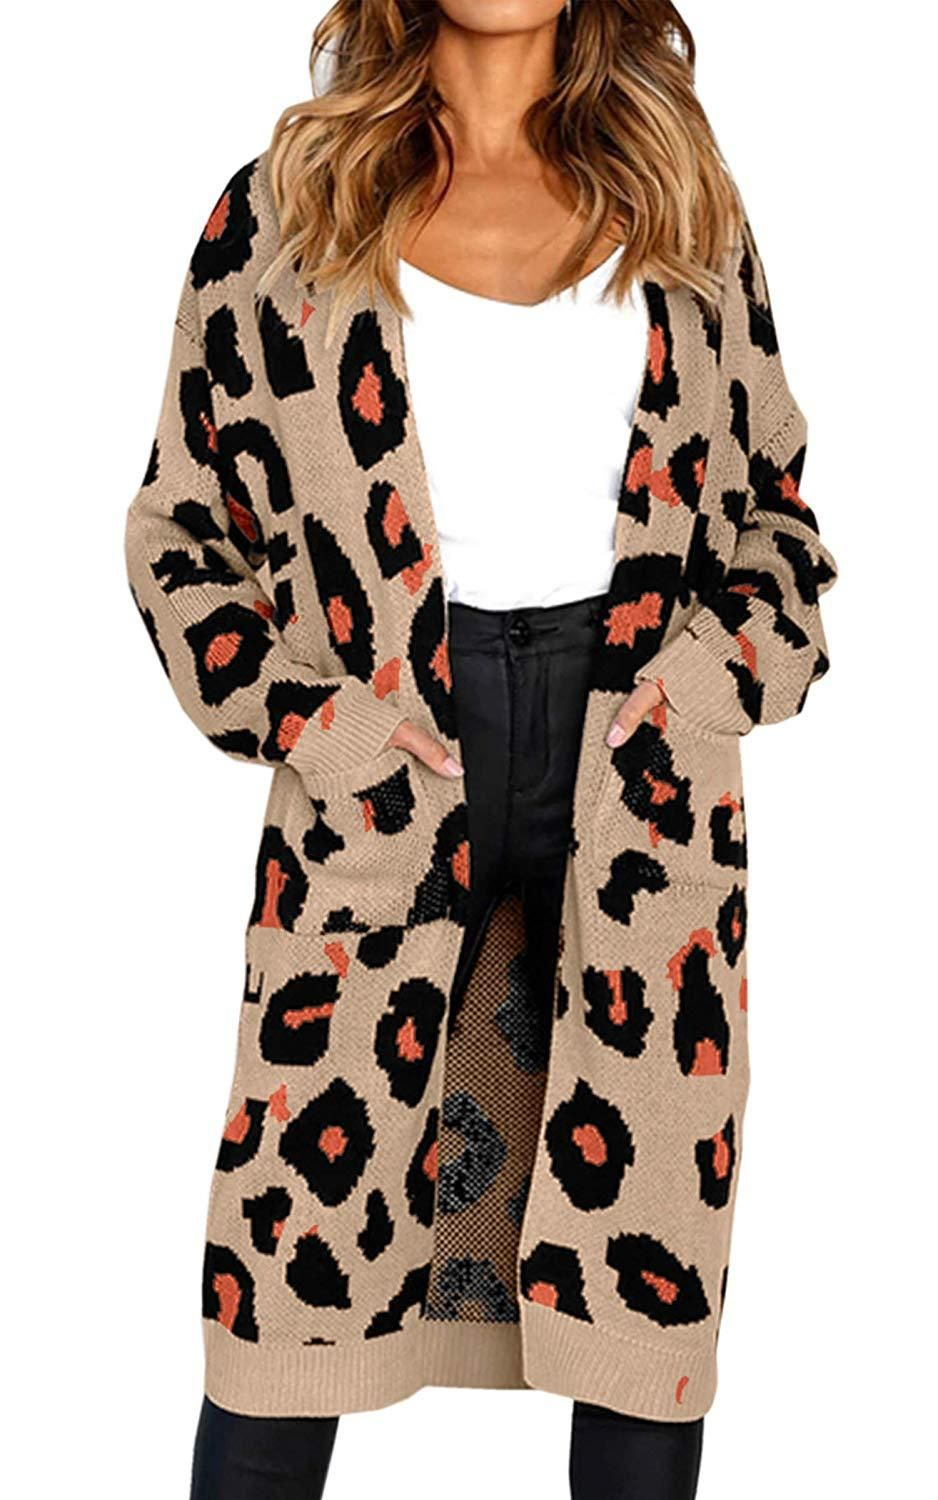 ad11801956f47c Women's Long Sleeves Leopard Print Knitting Cardigan Open Front Warm Sweater  Outwear Coats with Pocket